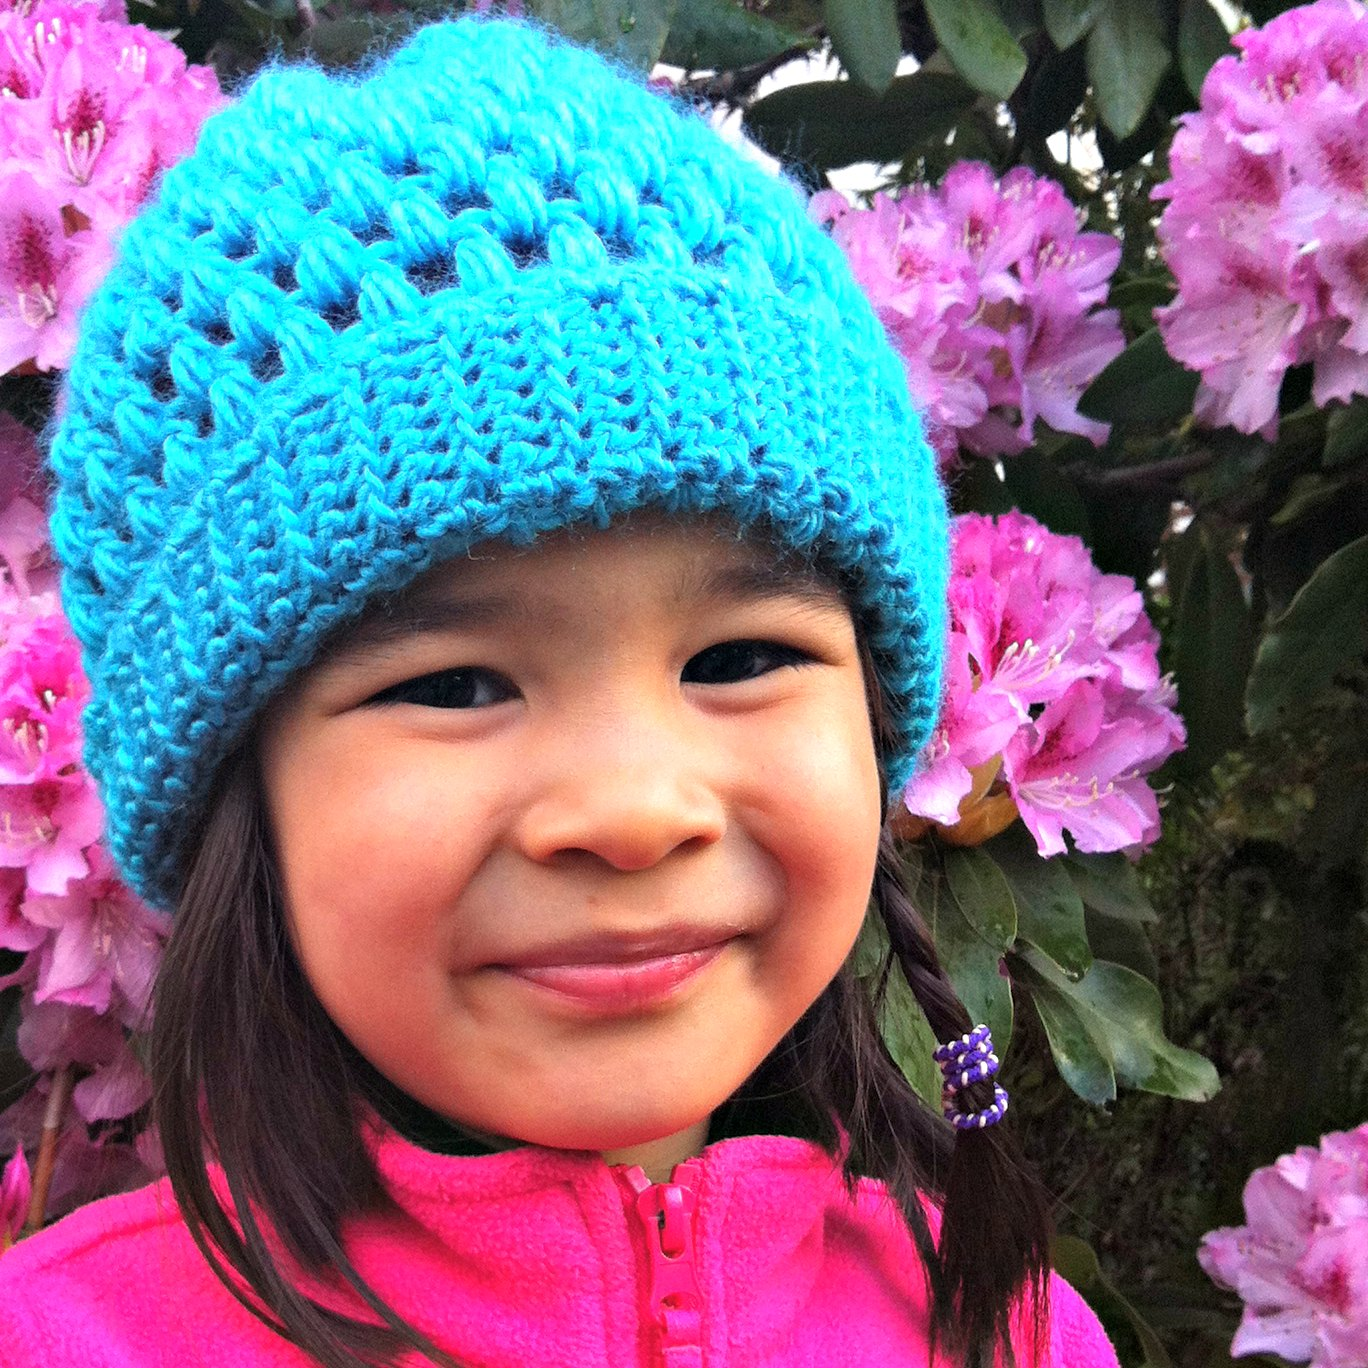 Sew Creative Crocheted Kids Slouch Hat Pattern- Great for ...